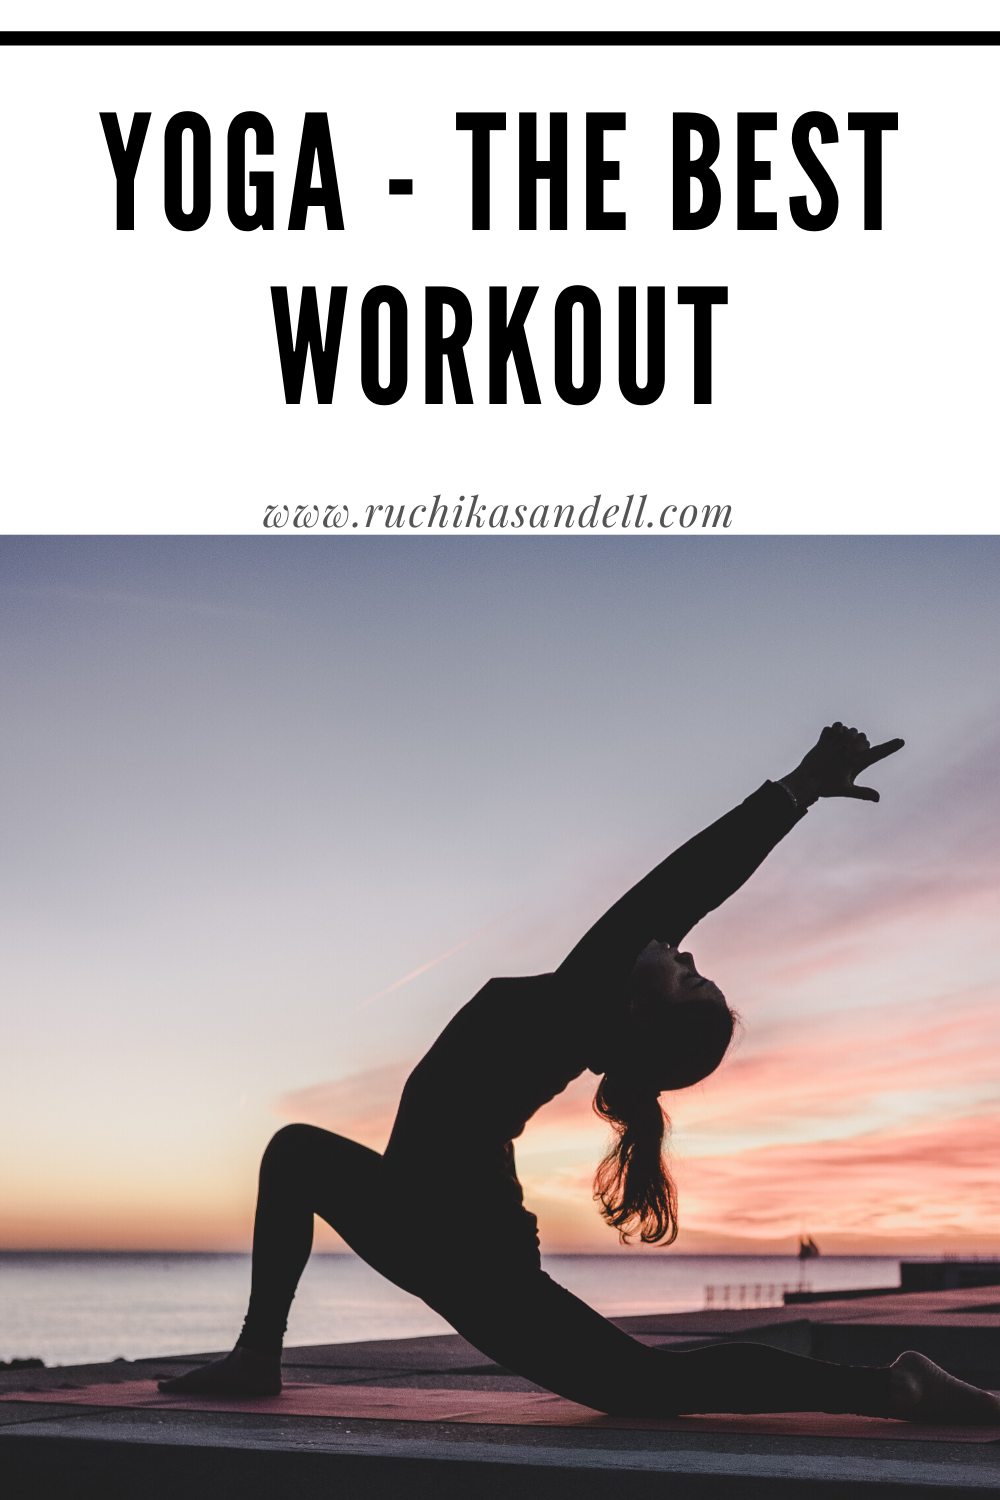 Why Yoga is the Best Workout – My Love for Yoga